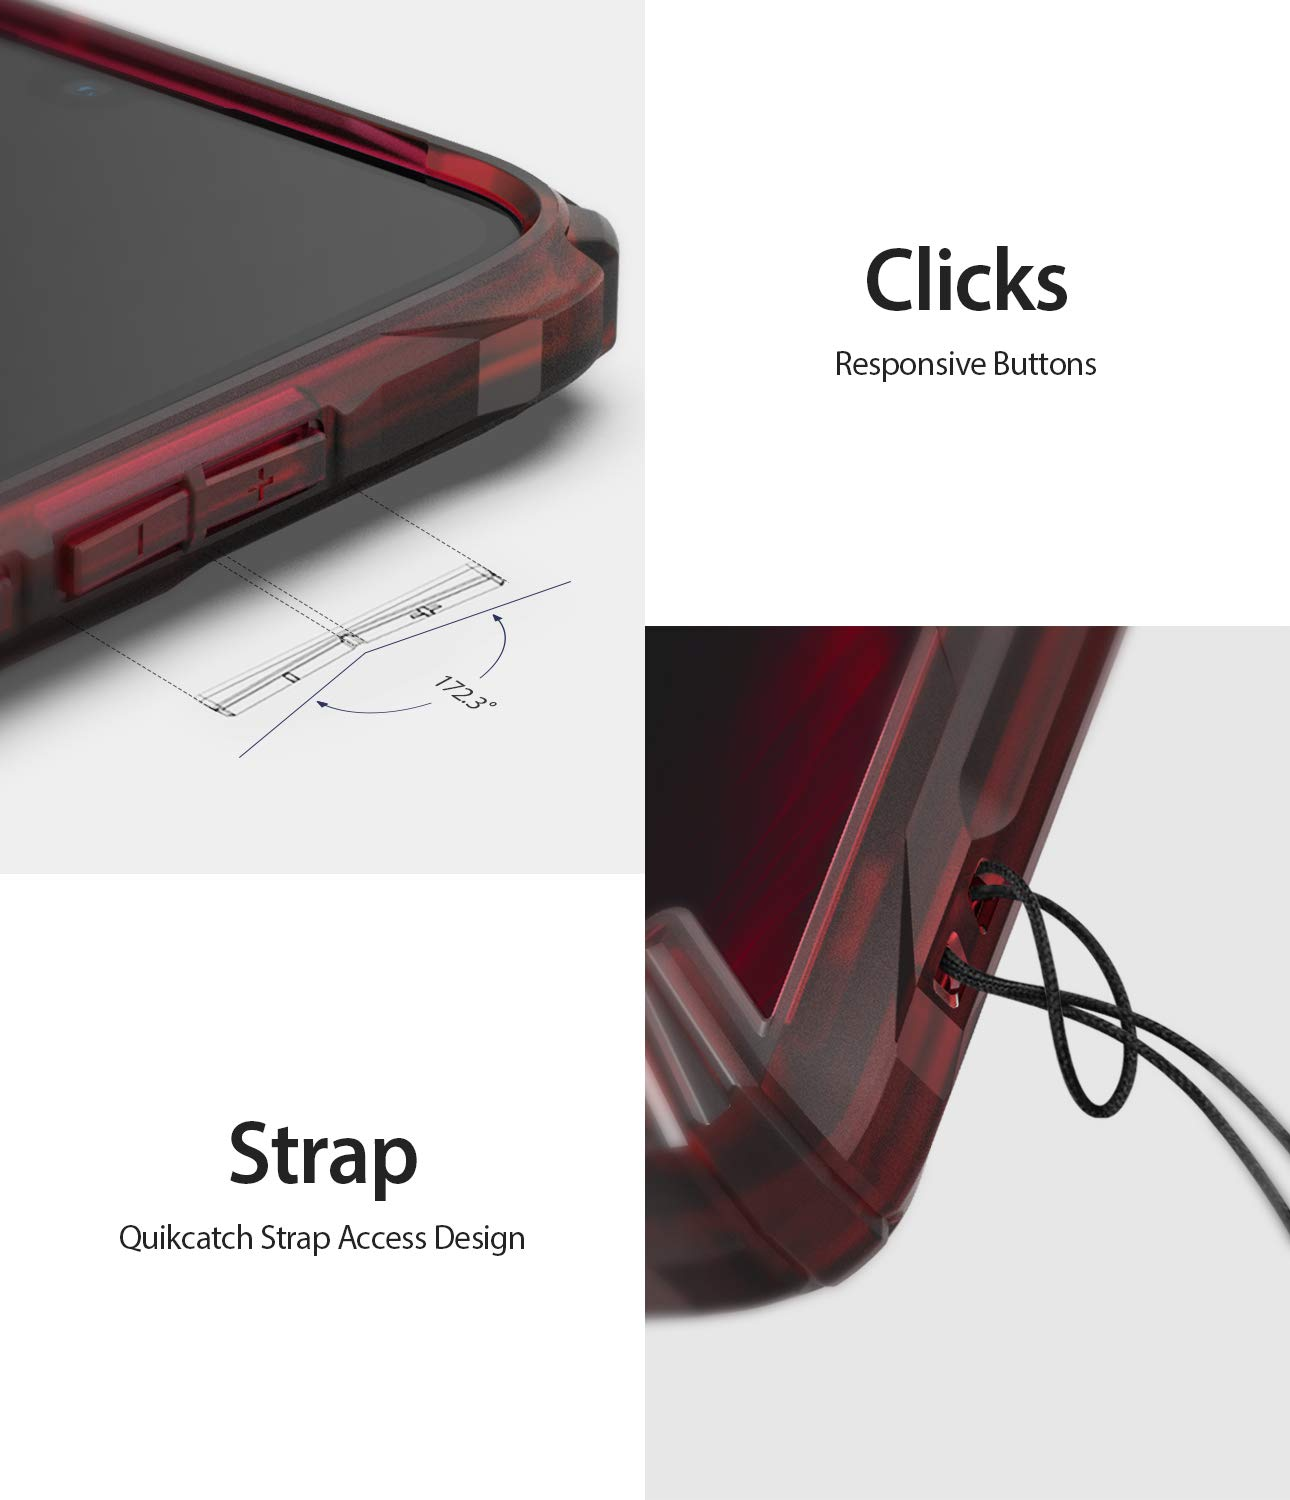 responsive button clicks / quikcatch strap access design